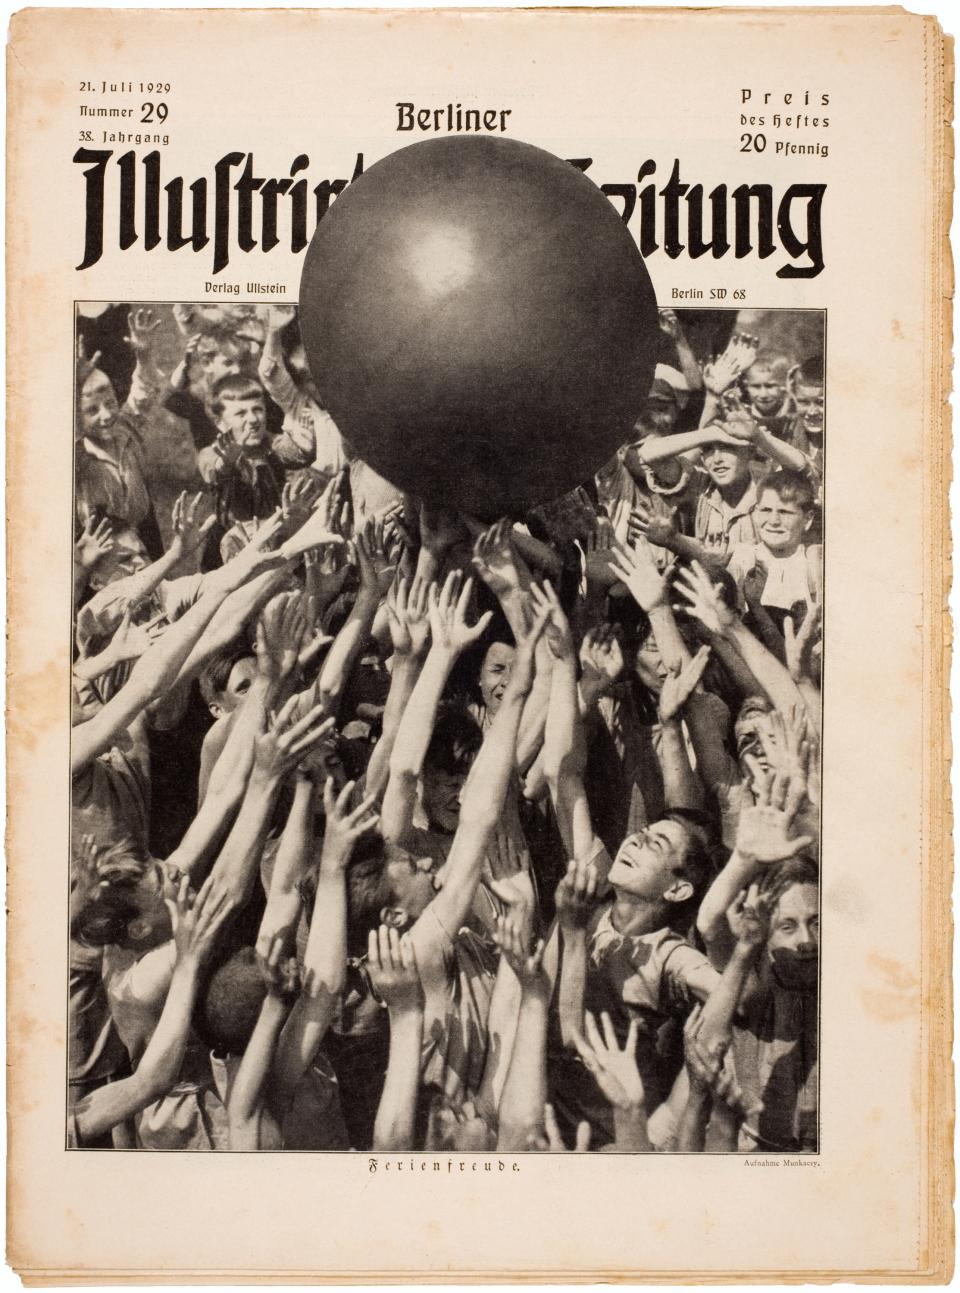 Berliner Illustrirte Zeitung, July 21, 1929, cover photograph by Martin Munkasci. Courtesy International Center of Photography